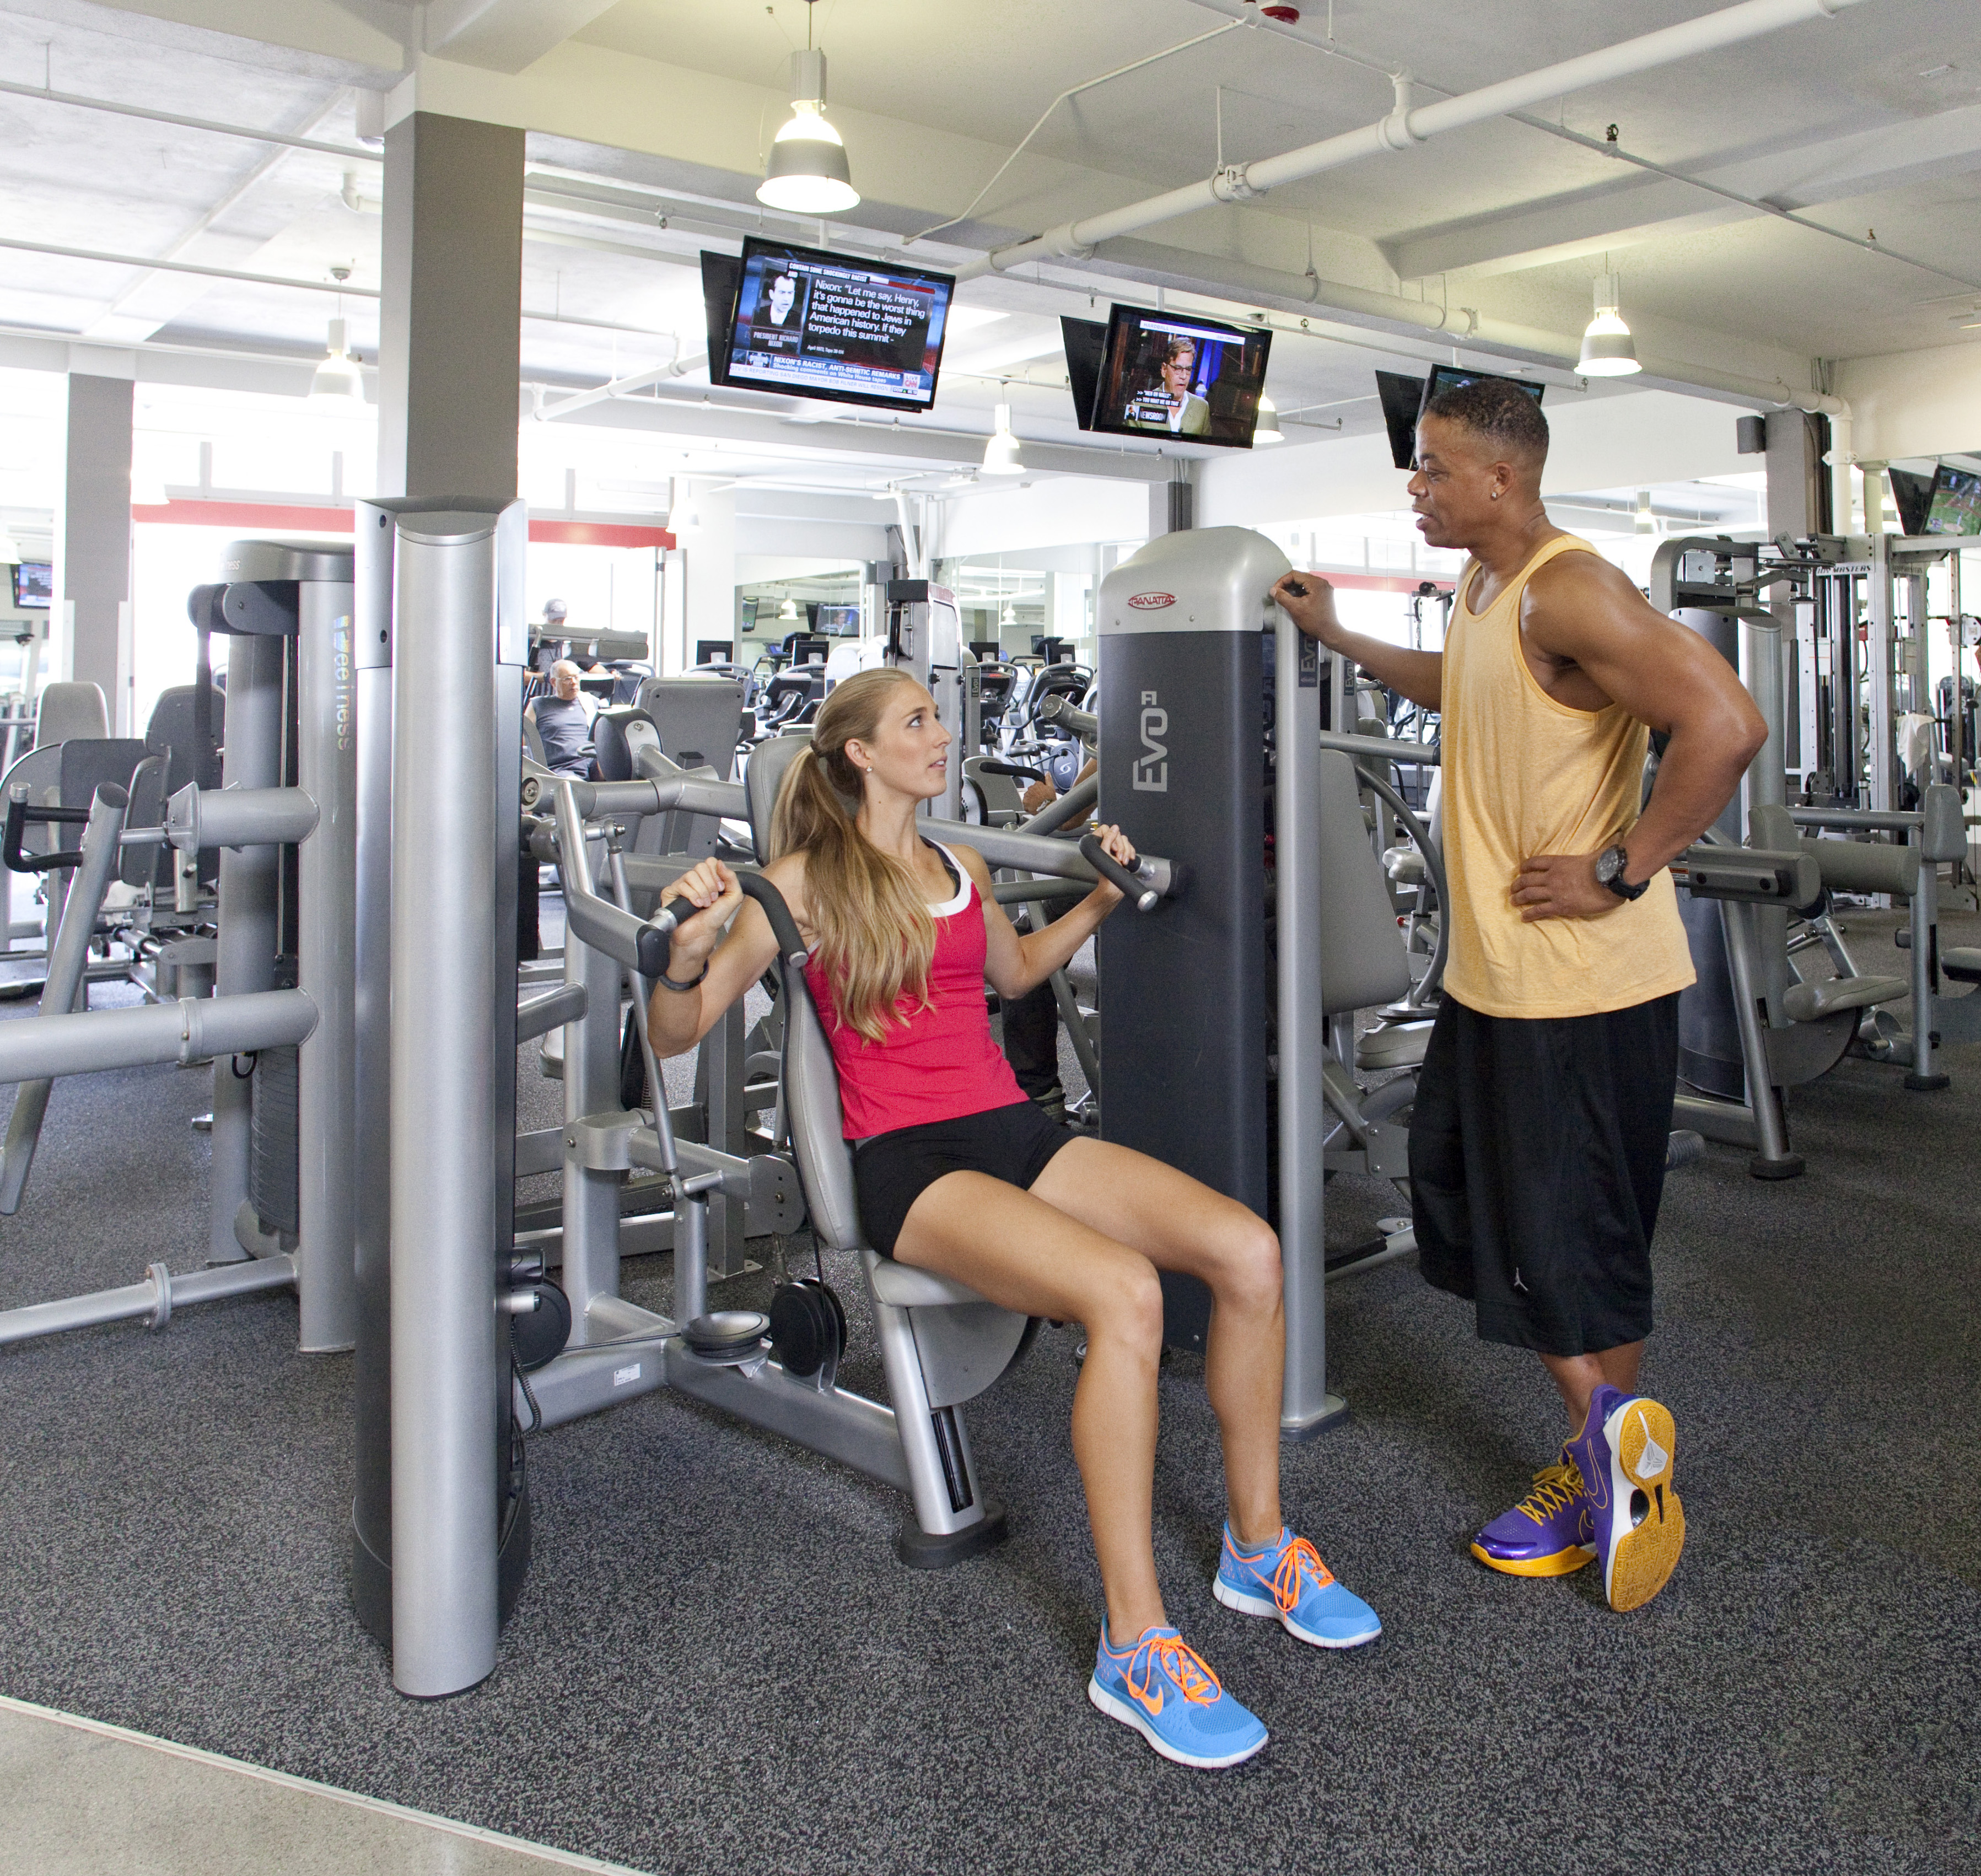 Burn Fitness personal training